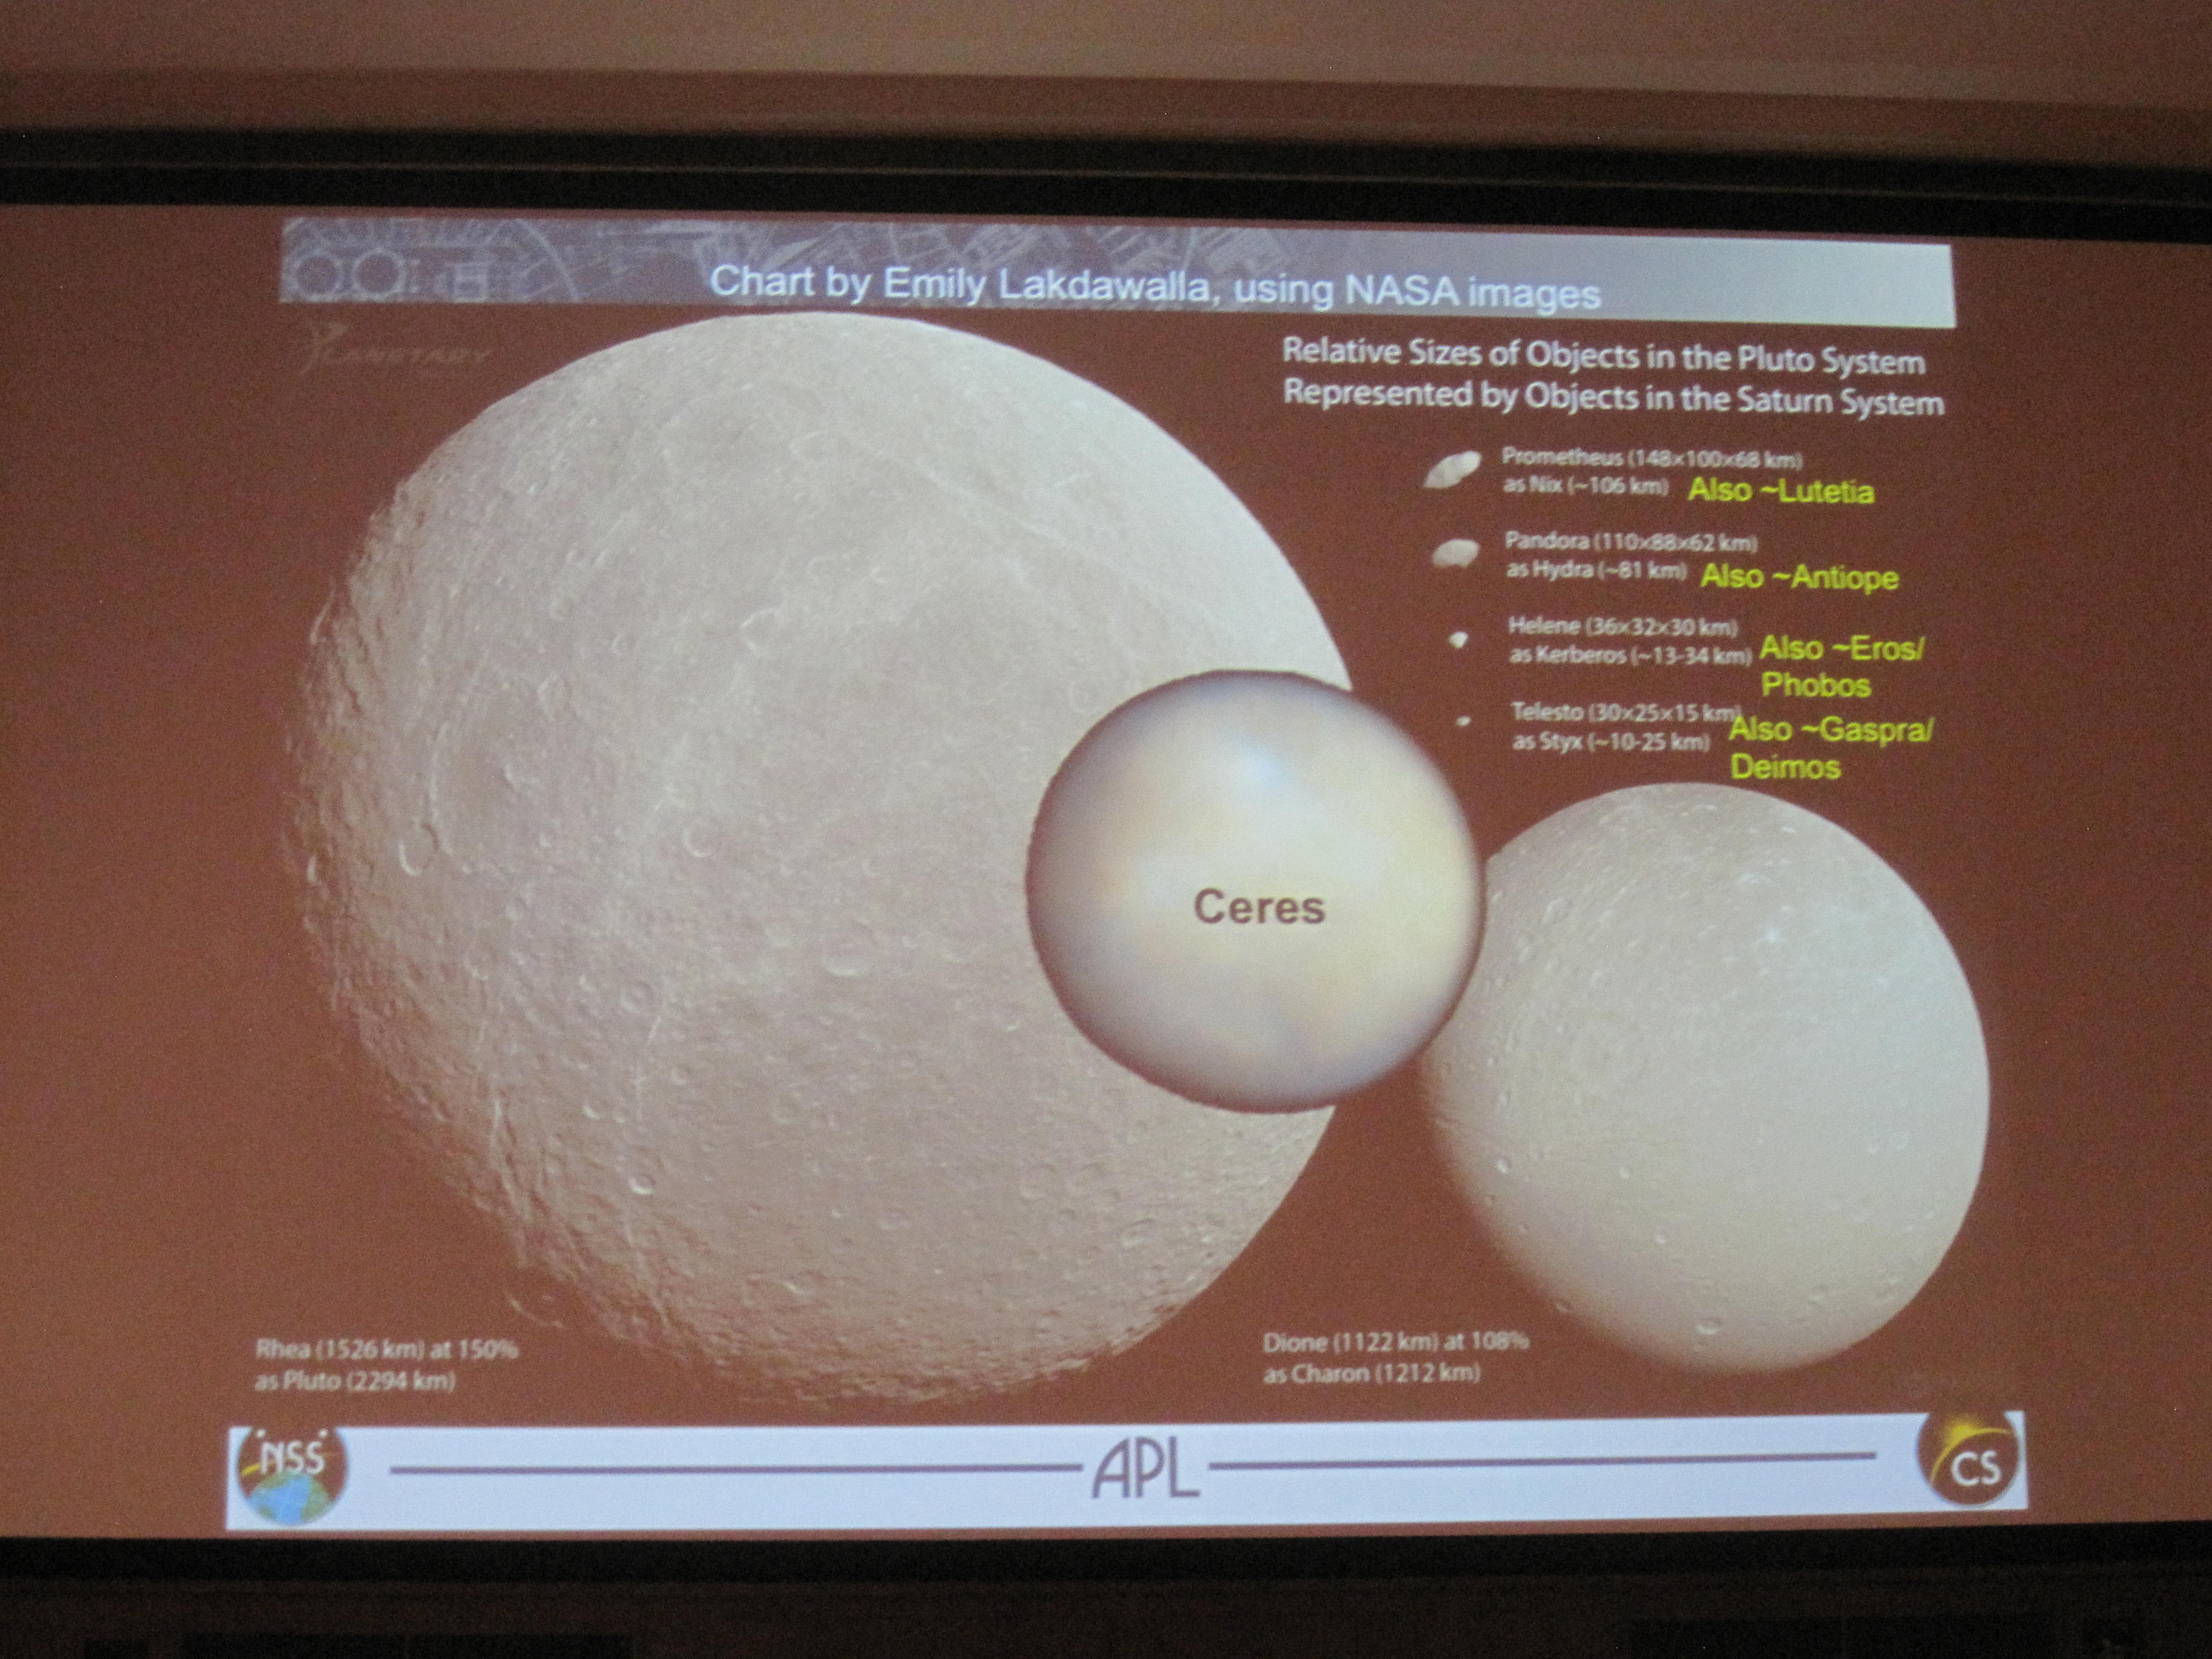 Pluto system and Ceres shown to scale, represented by objects from the Saturn system.